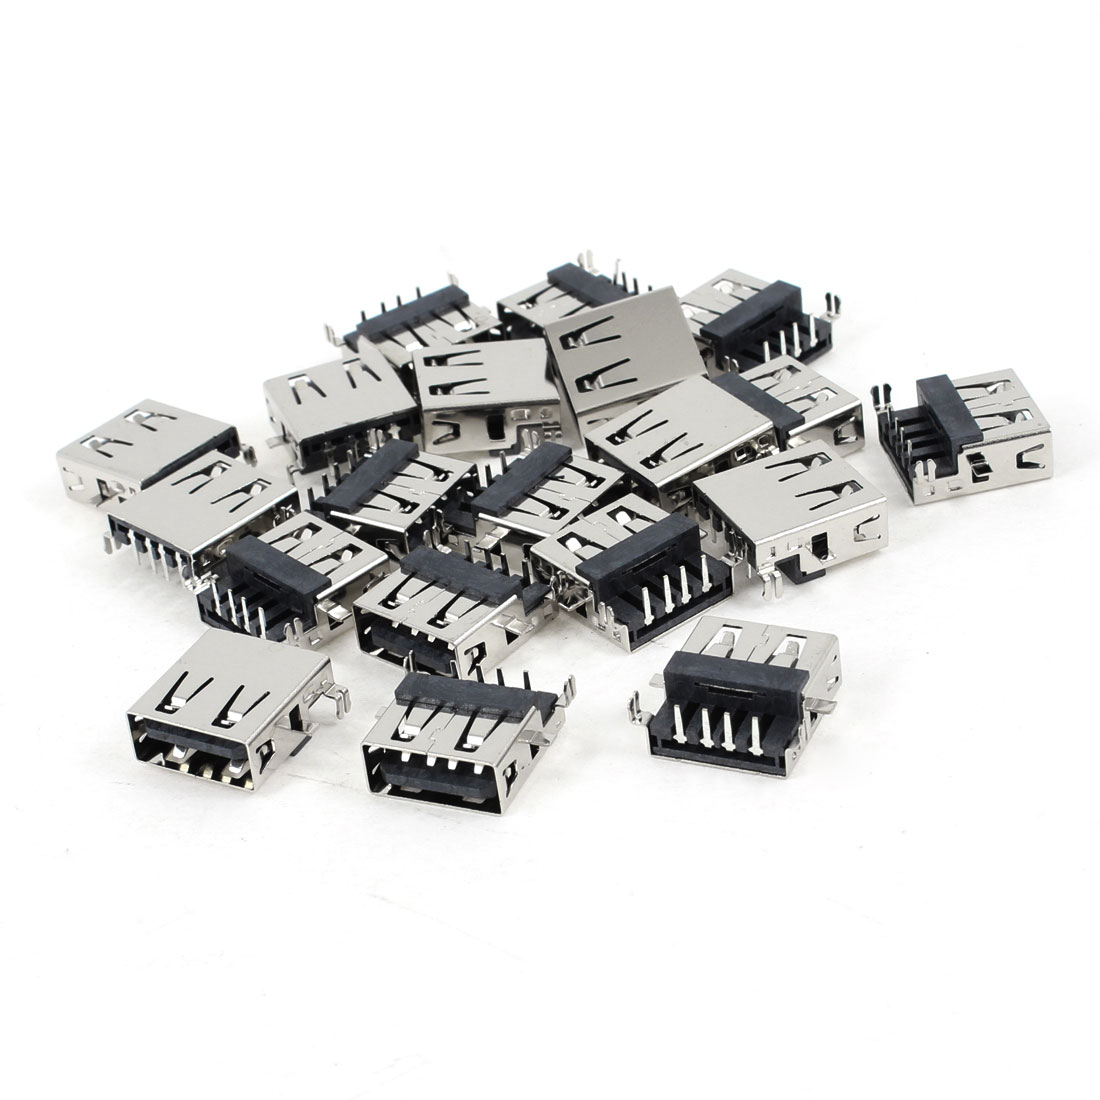 20 Pcs USB 2.0 Type A 90 Degree 4-Pin DIP Female Jack Connector